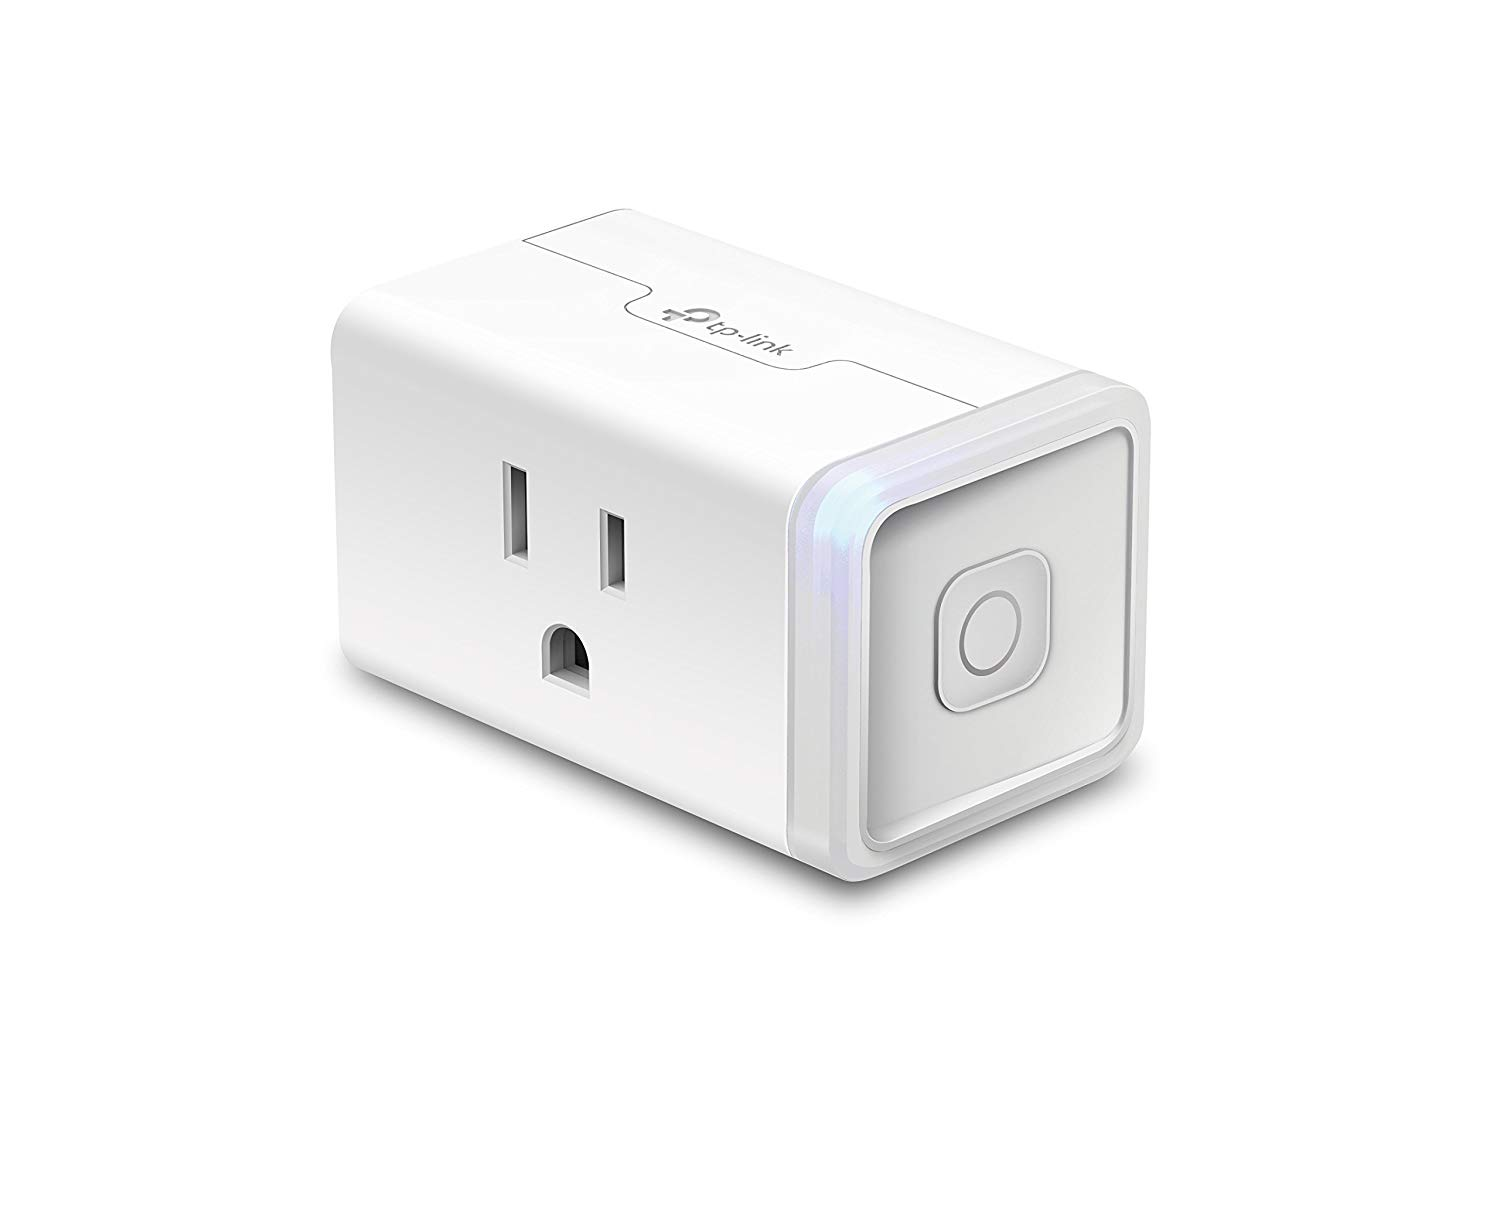 Kasa Smart WiFi Plug Mini by TP-Link - Google Home Mini Accessories and Kits